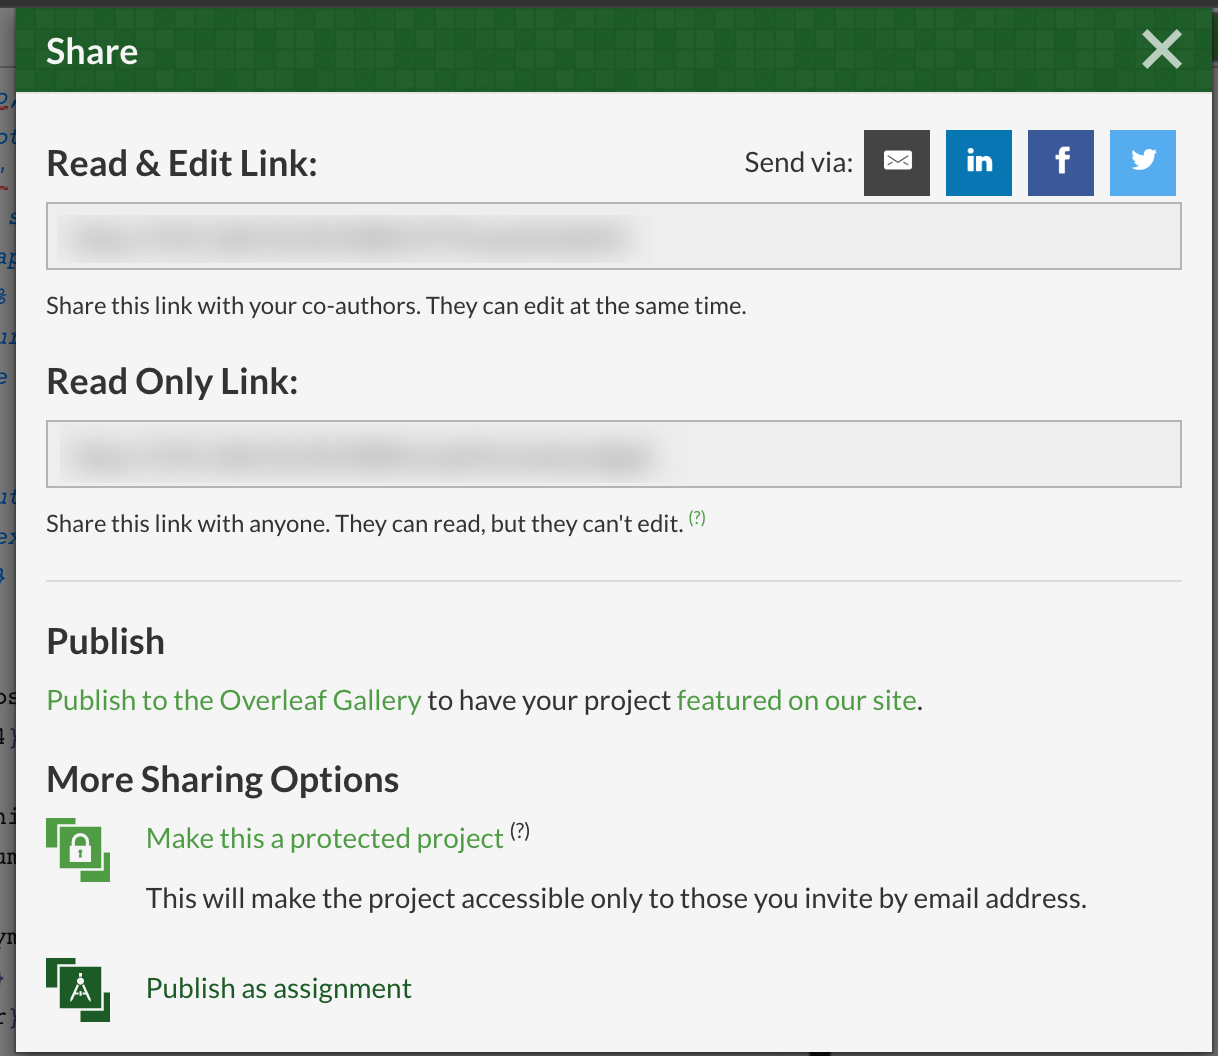 Publish as assignment on Overleaf